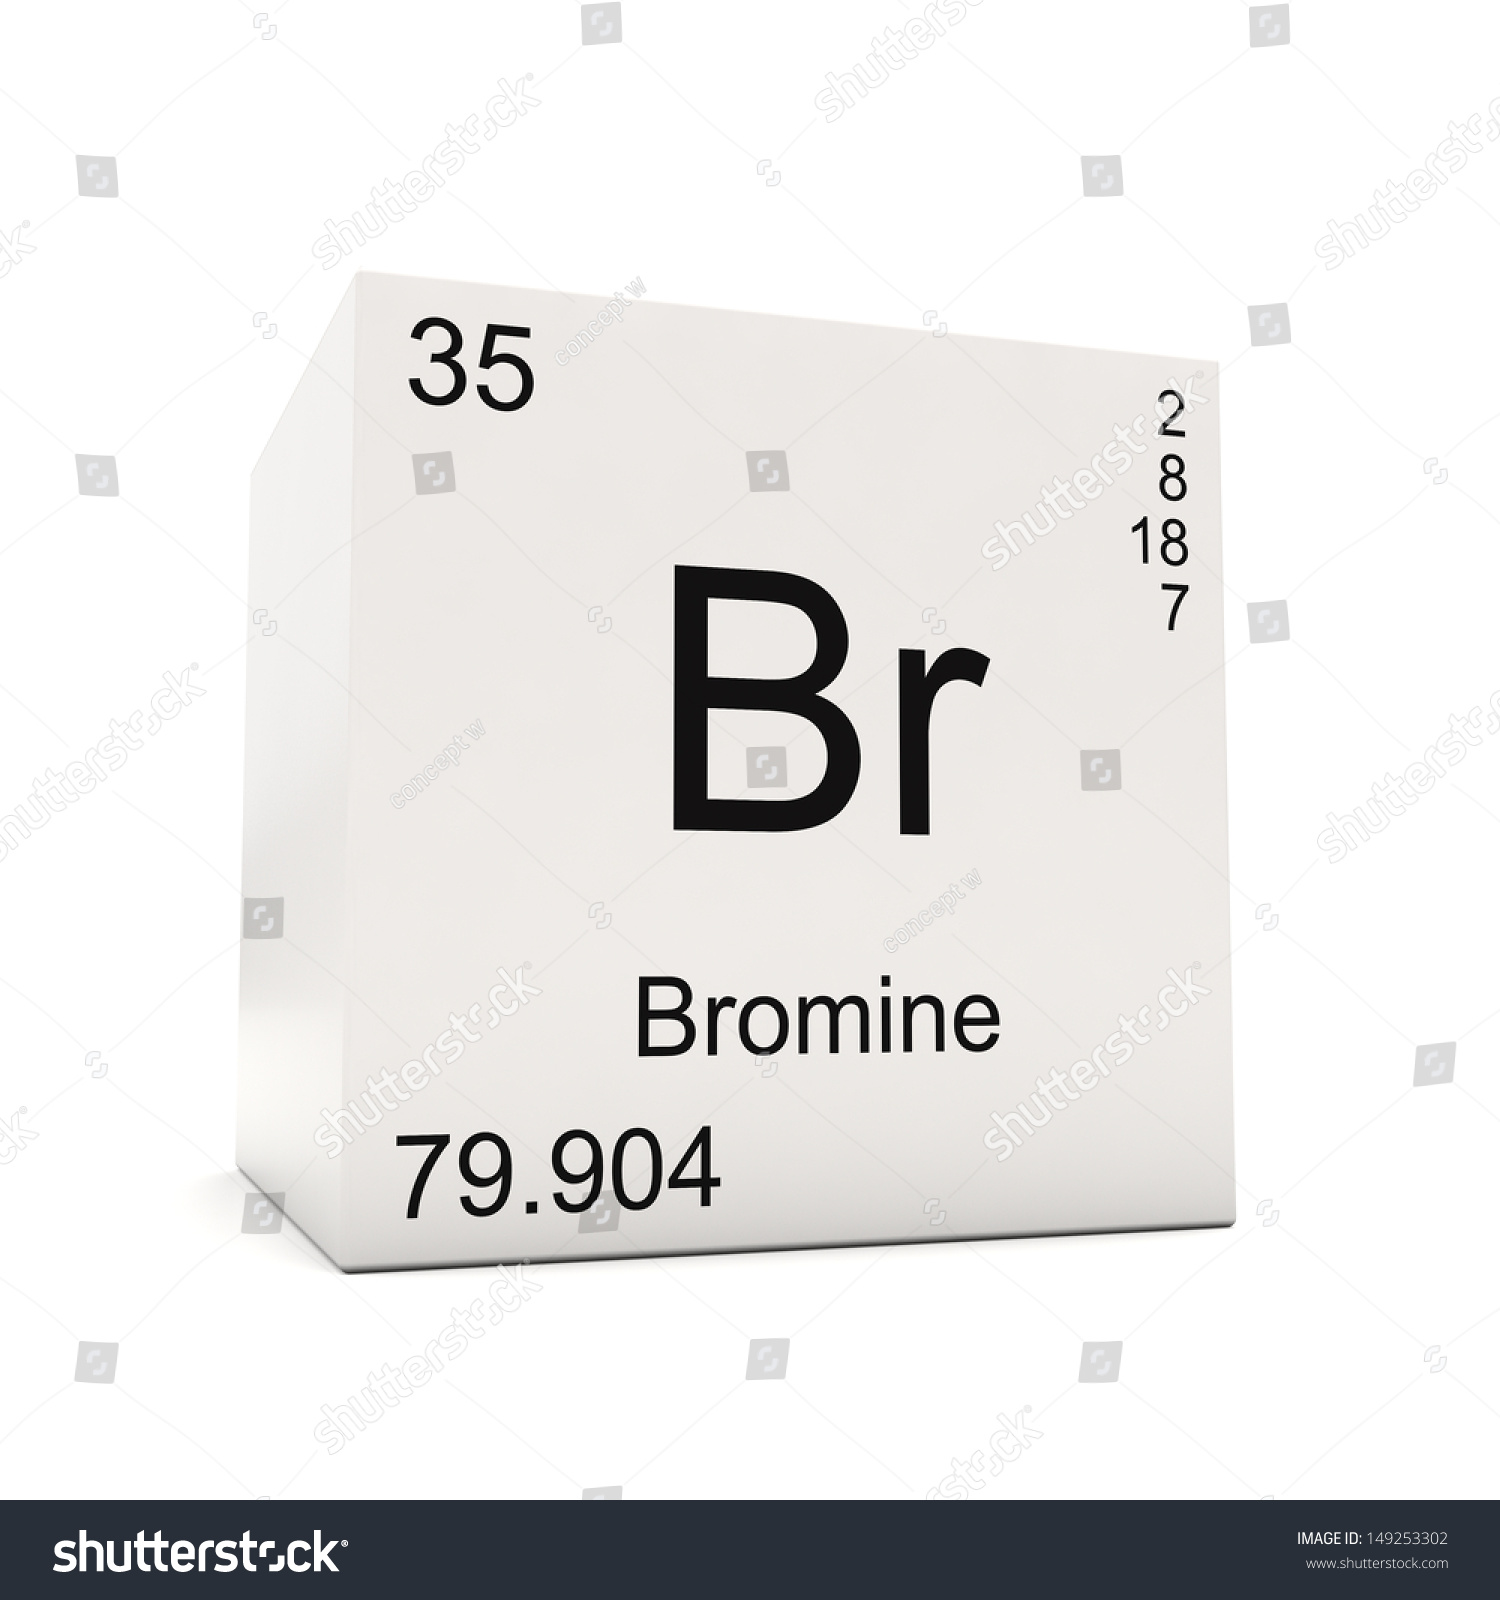 Cube bromine element periodic table isolated stock illustration cube of bromine element of the periodic table isolated on white background gamestrikefo Choice Image